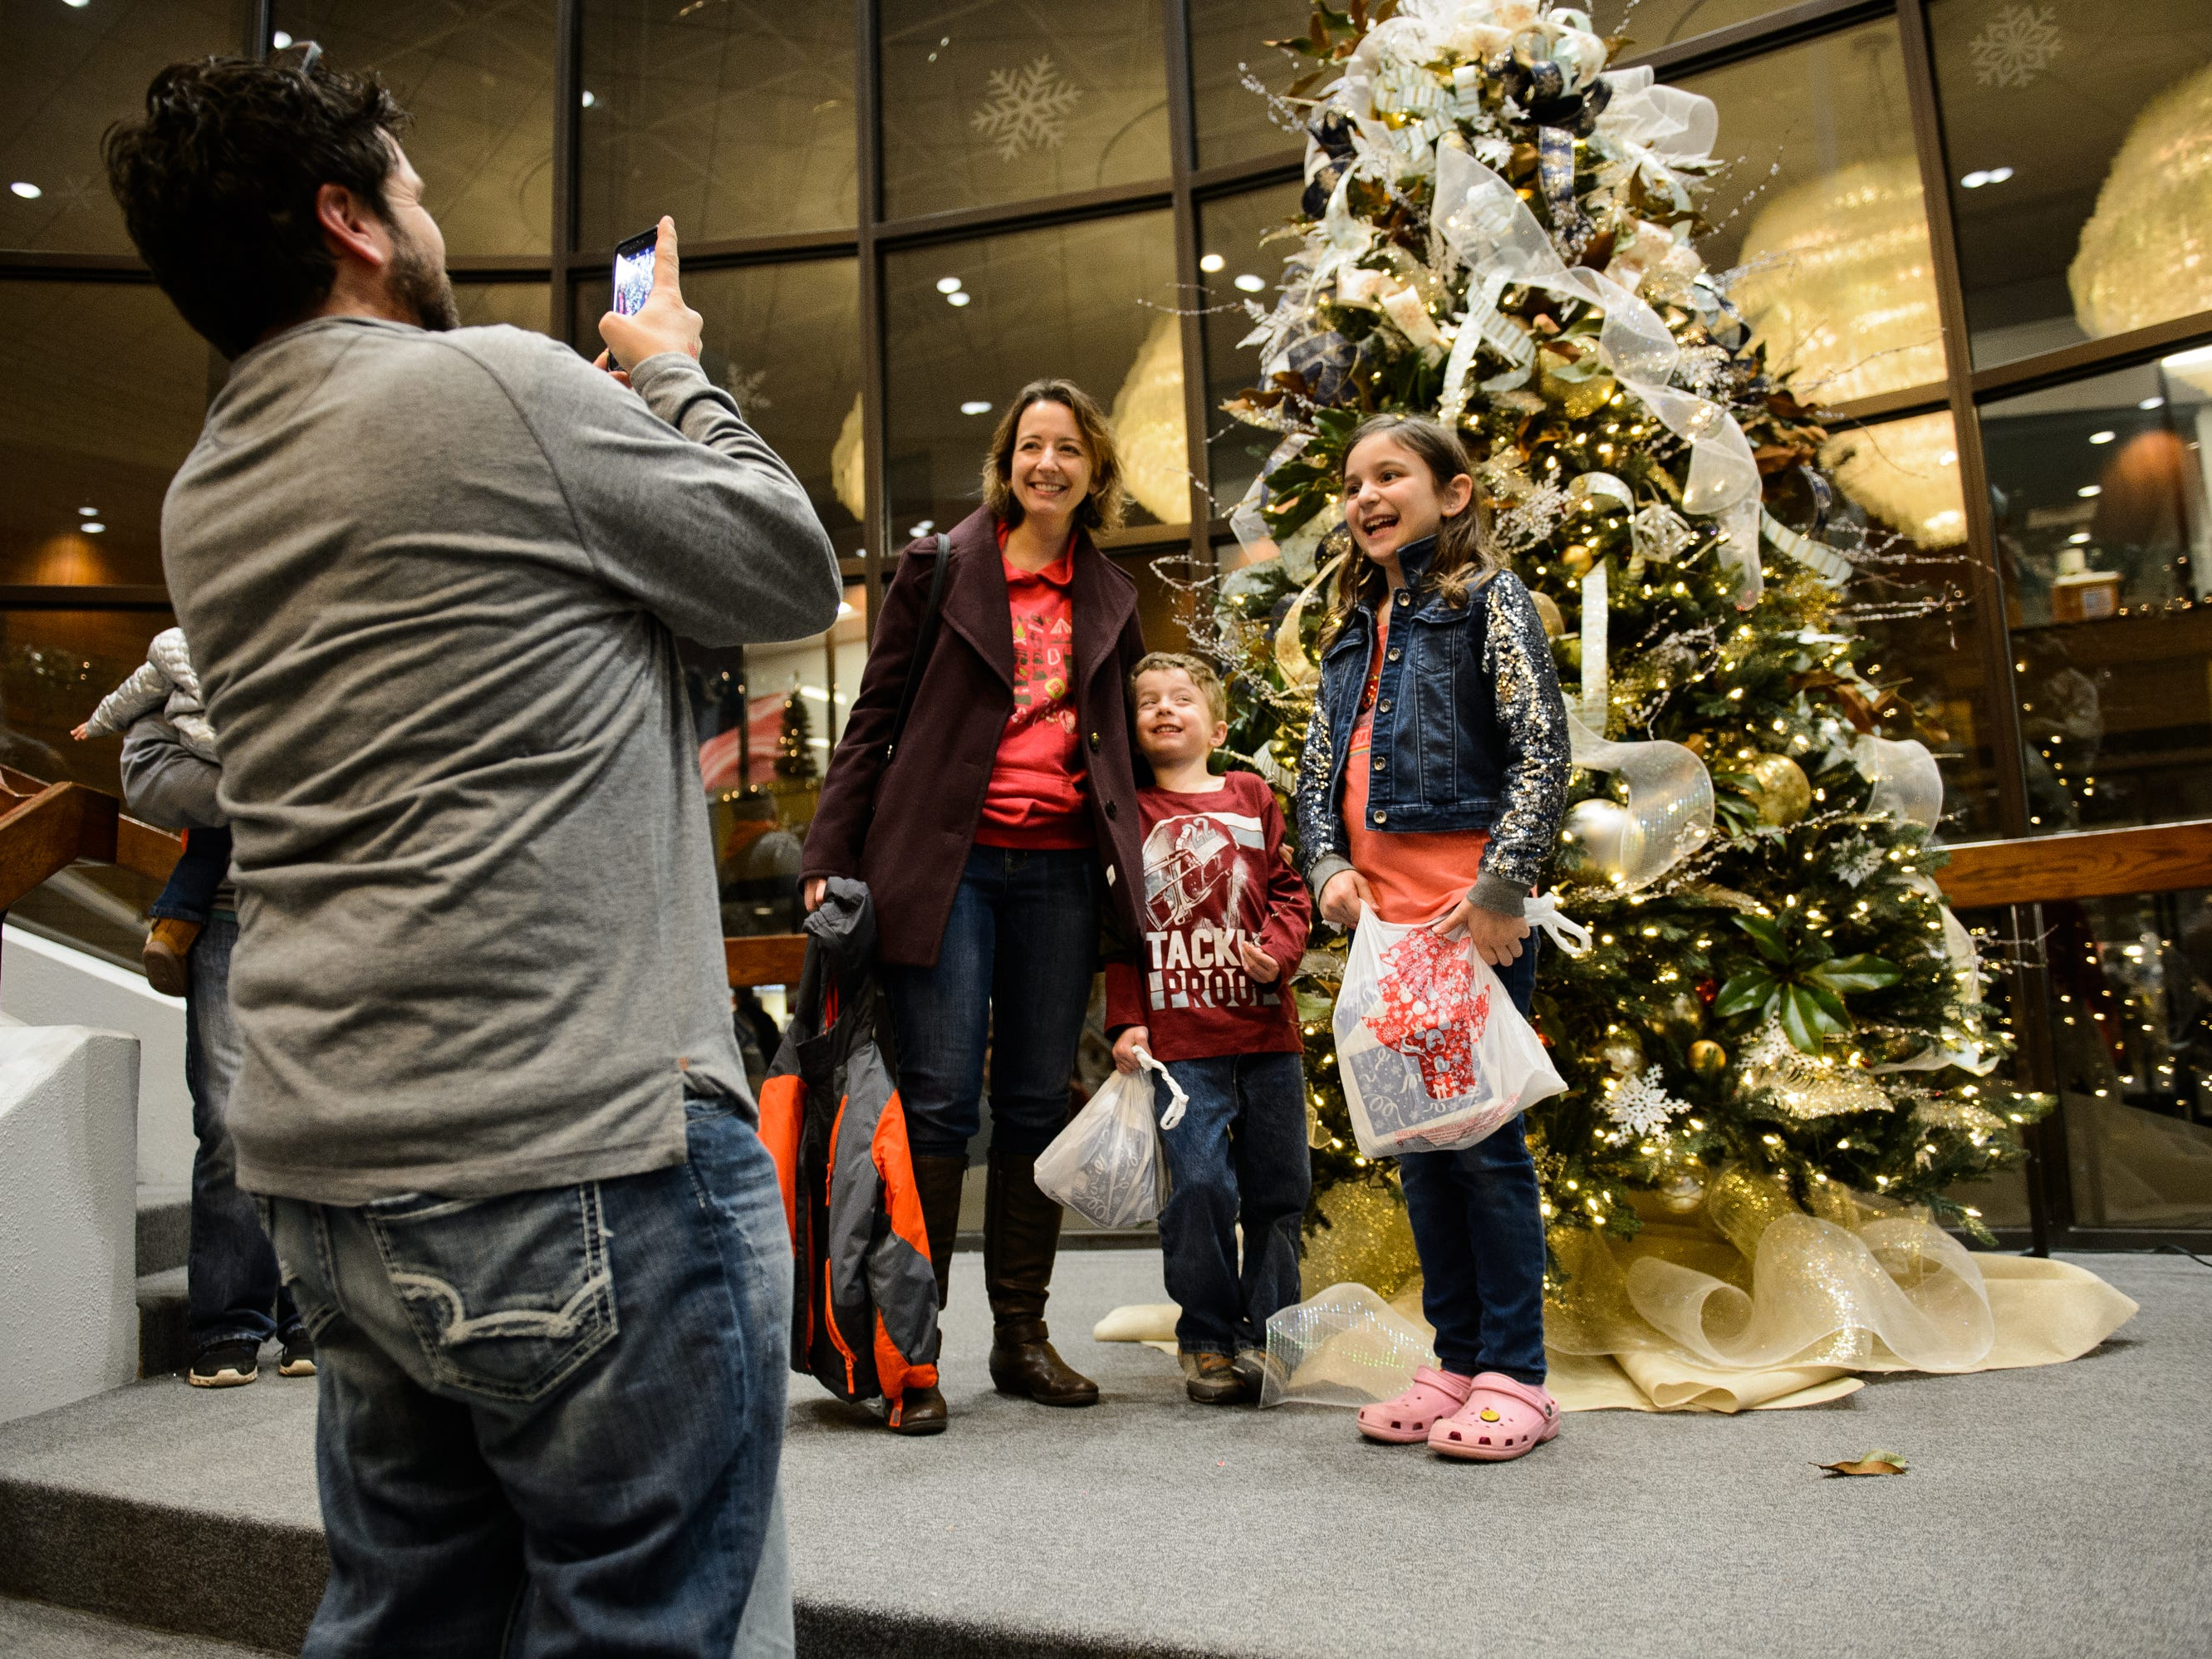 Kasey McClure takes a photo of his wife Susan, daughter Ellie and son Kasey Paul Jr. during Bob Jones University's annual Christmas Celebration on Friday, Nov. 30, 2018.